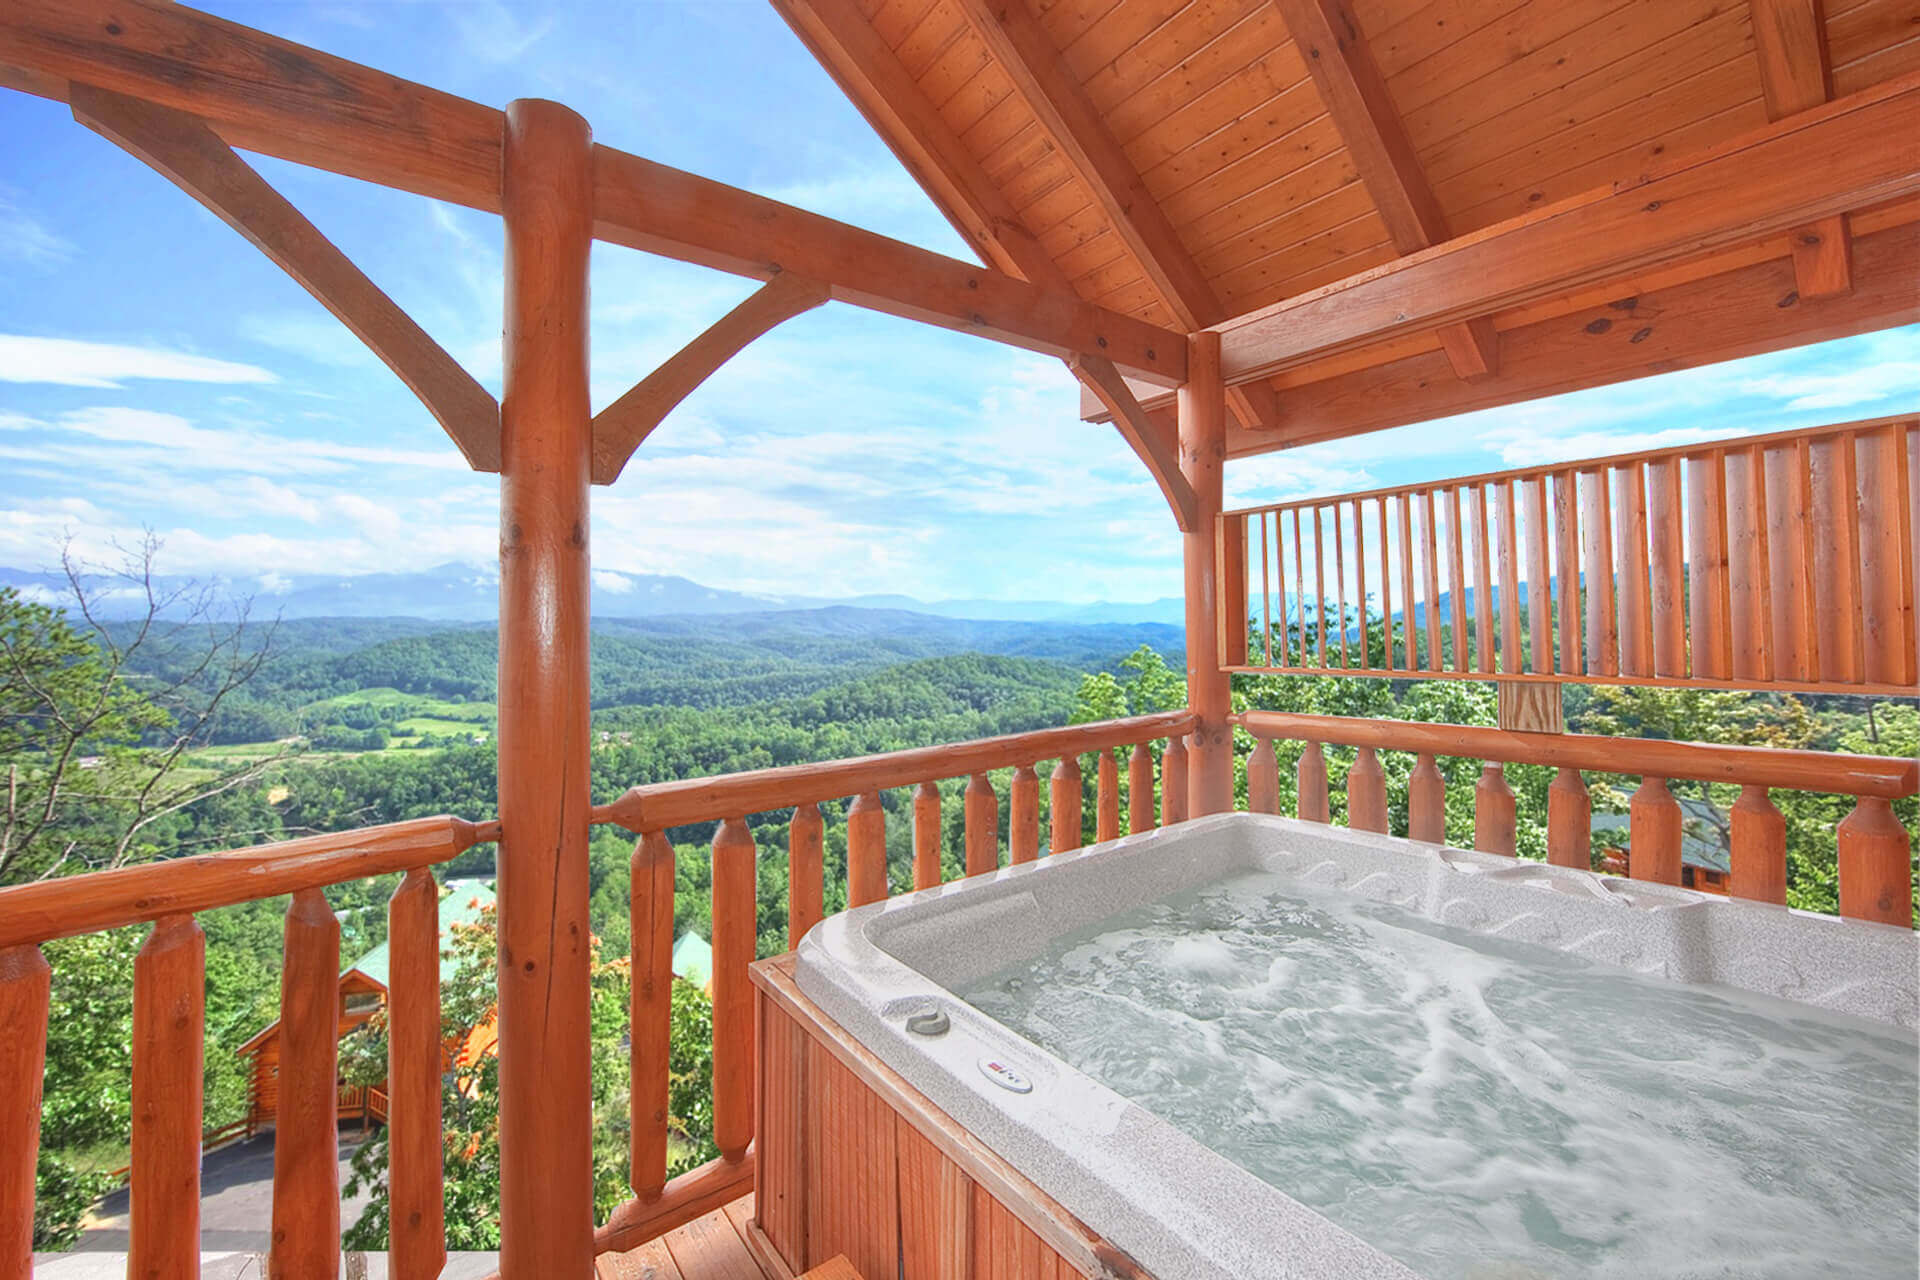 luxury for indoor pigeon dollywood small cheap in bedroom sale lodging rentals pool cabins near pet friendly forge with tn